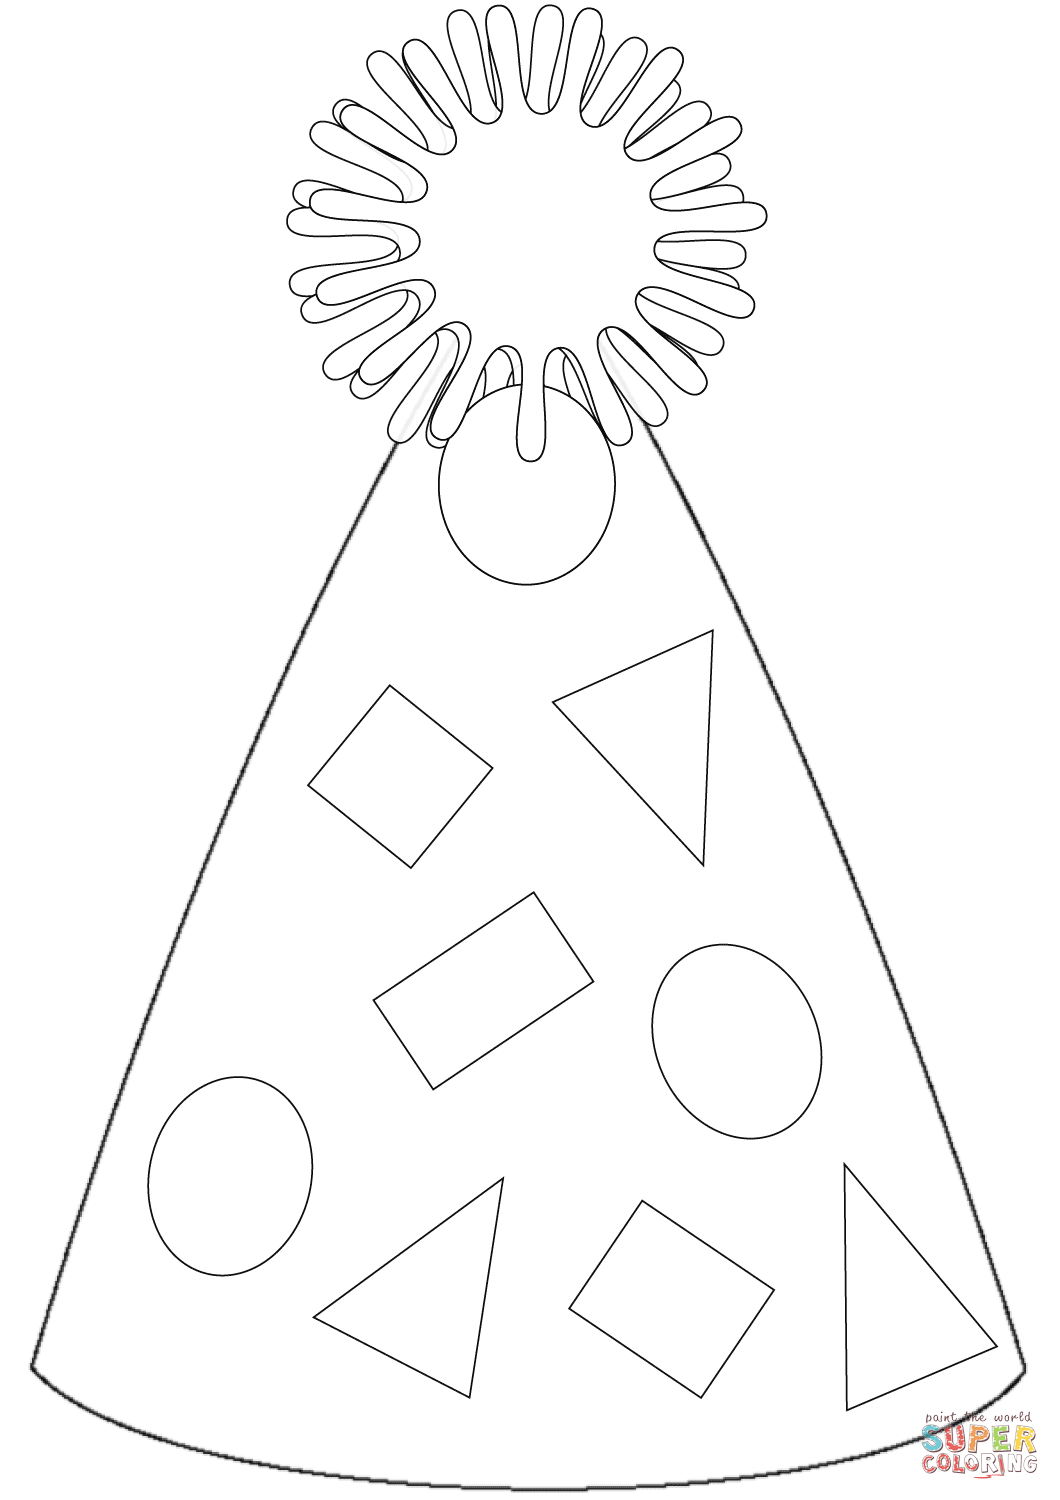 Party Hat Coloring Page Free Printable Coloring Pages